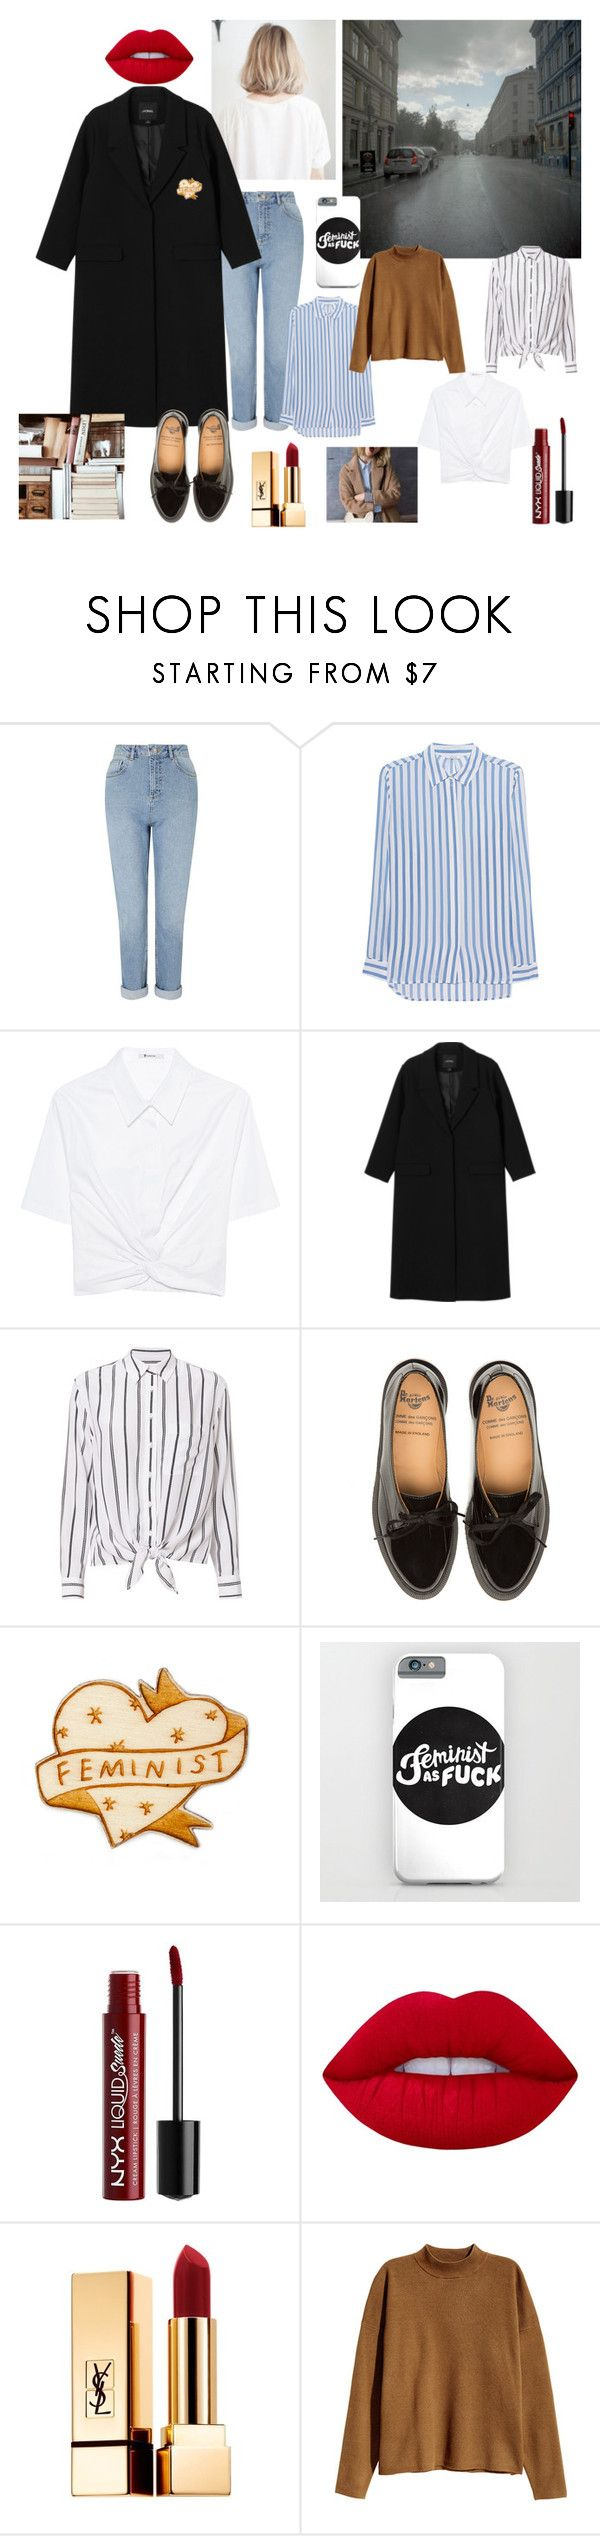 """""""noora"""" by lizzieyockney on Polyvore featuring Miss Selfridge, iHeart, T By Alexander Wang, Monki, Equipment, Charlotte Russe, Lime Crime, Yves Saint Laurent and H&M"""